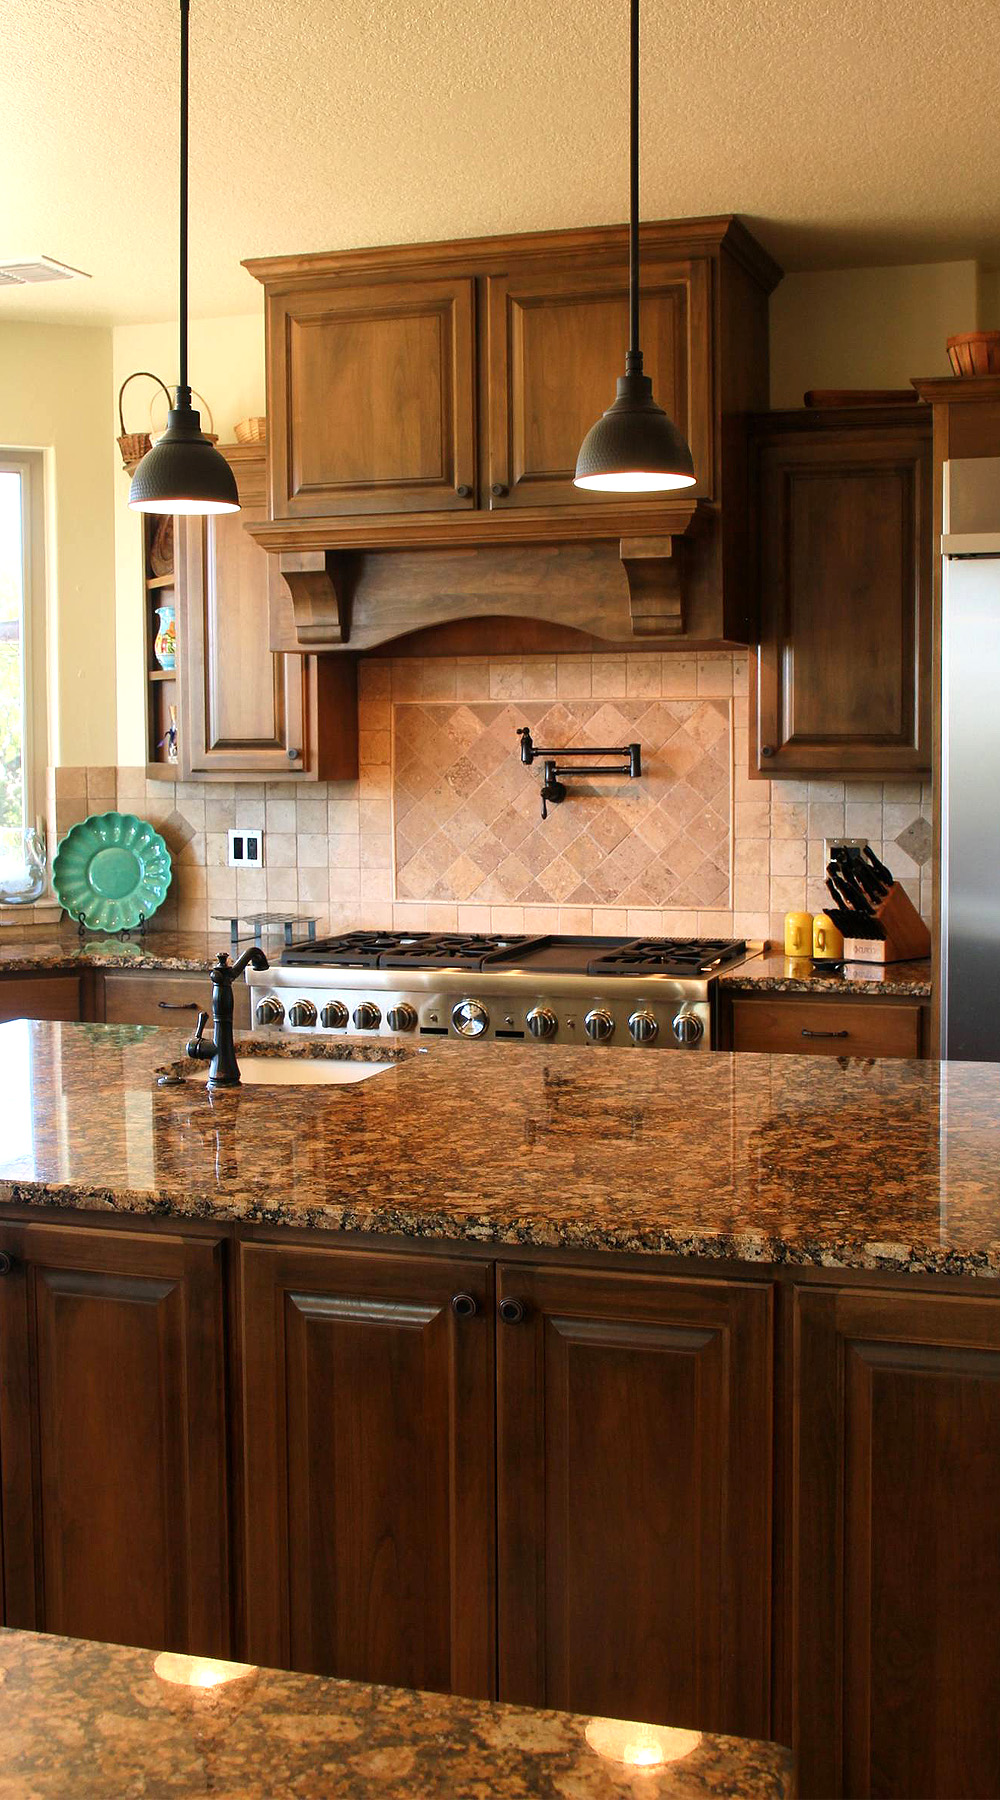 - 29+ ( Ivory Travertine ) Backsplash Tile Ideas - Natural Design Style!